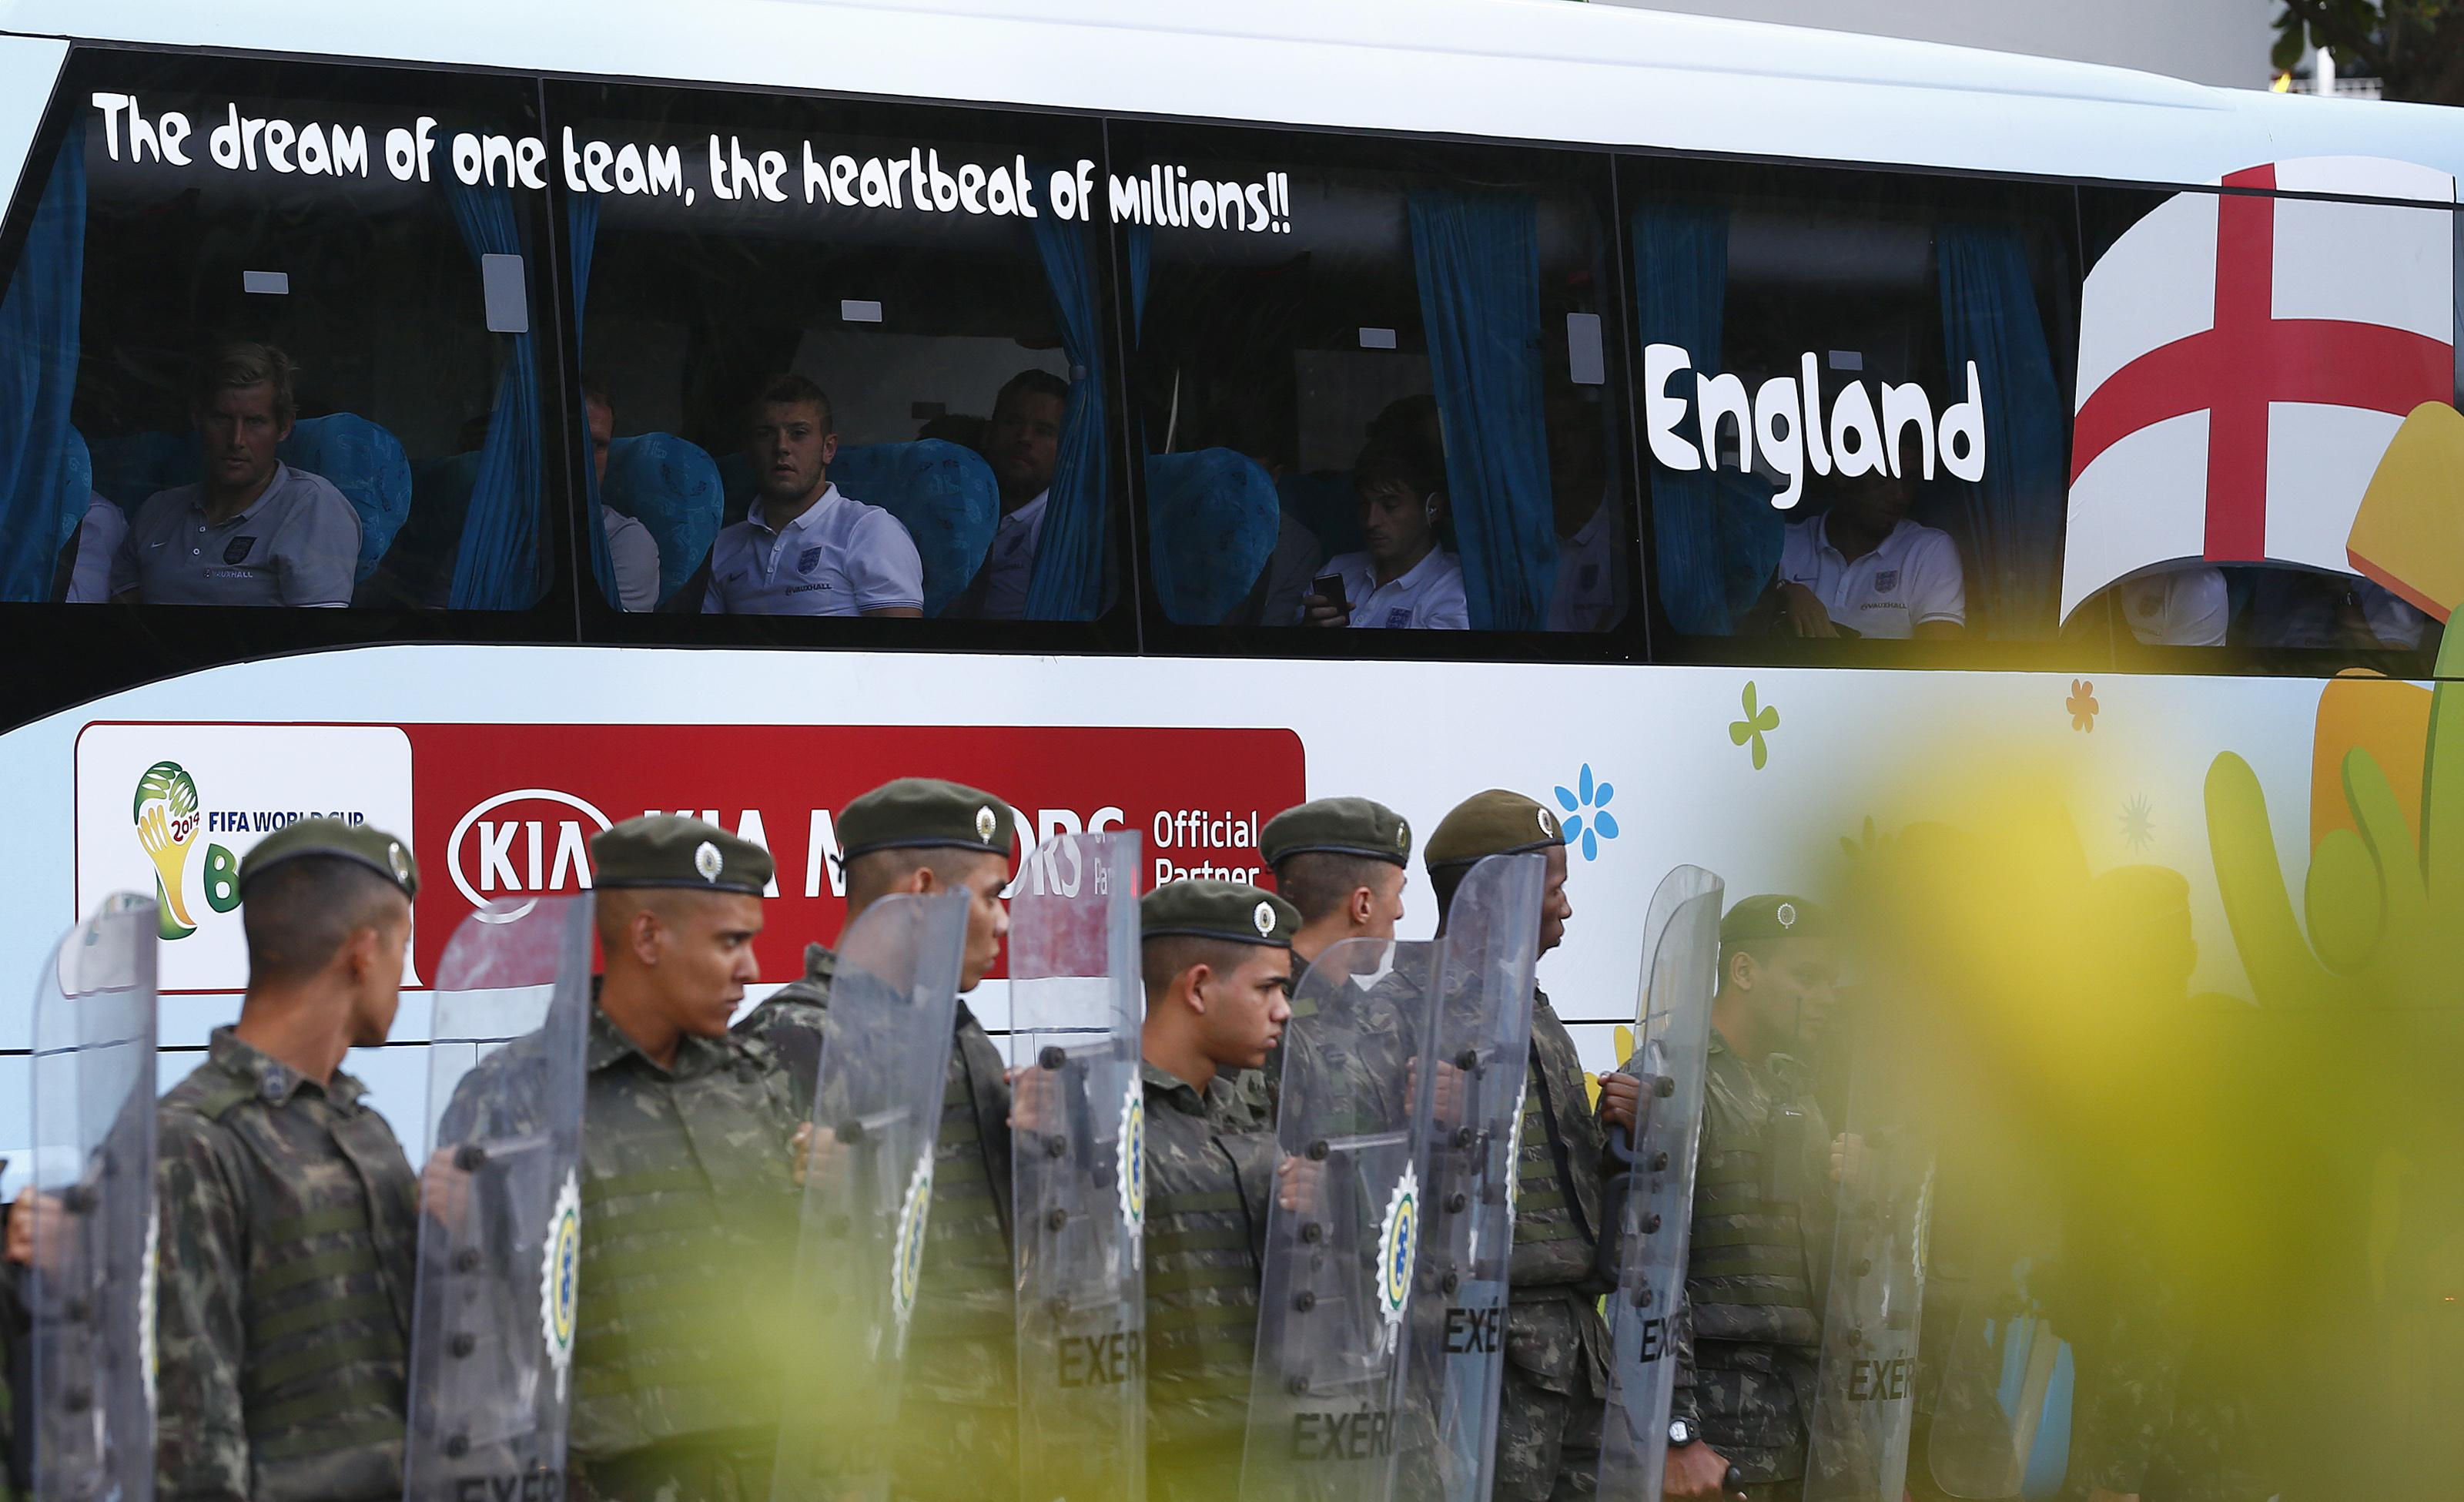 2014 World Cup - England Arrival